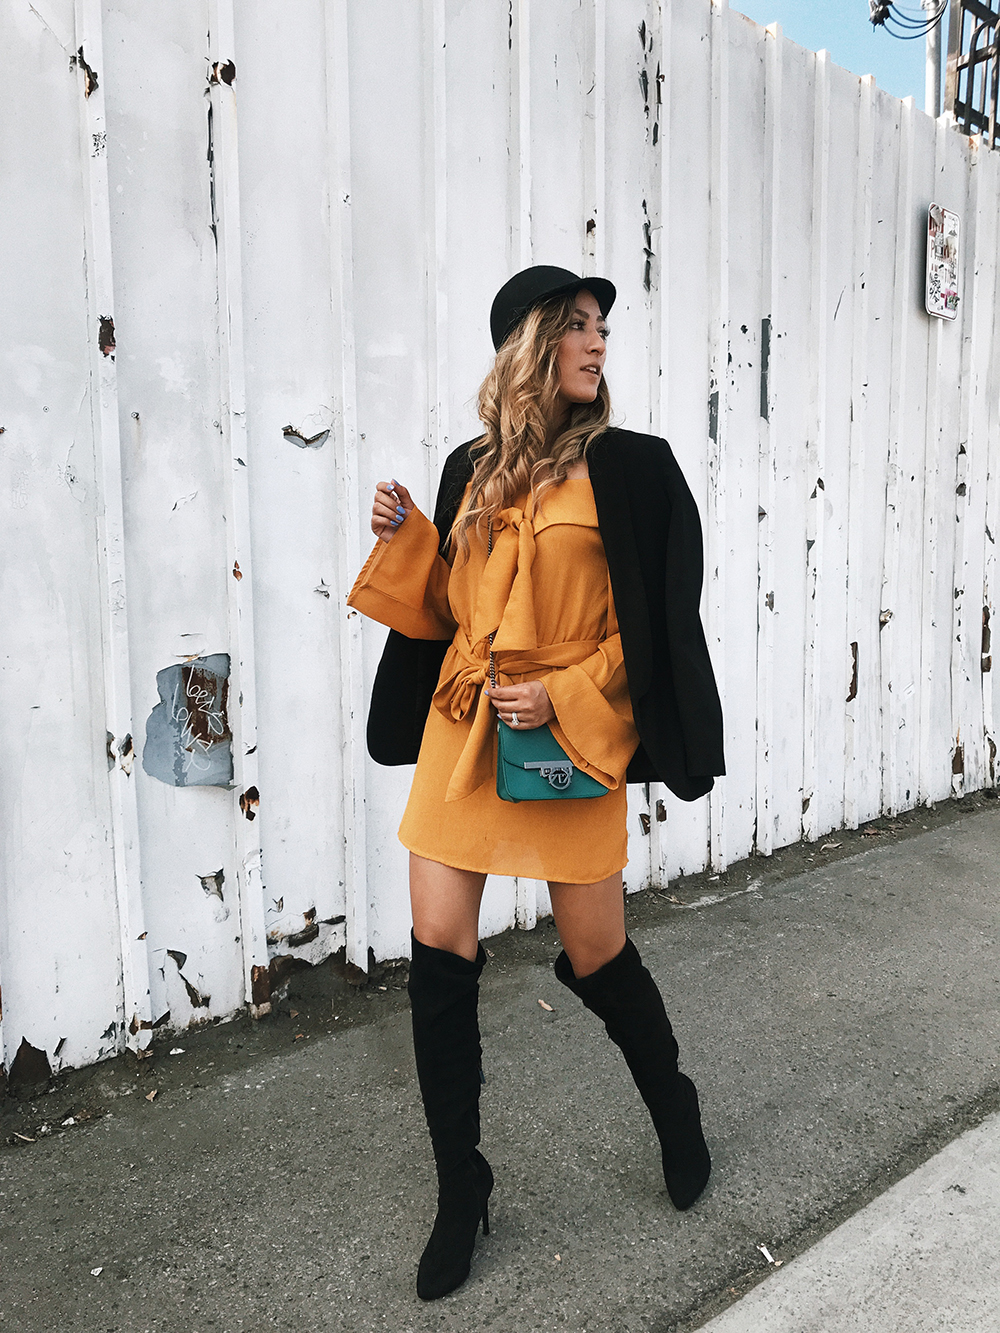 5 Boots I'm Loving, fall boots, 5 boots, trending, melrodstyle, ootd, outfit, sabo skirt